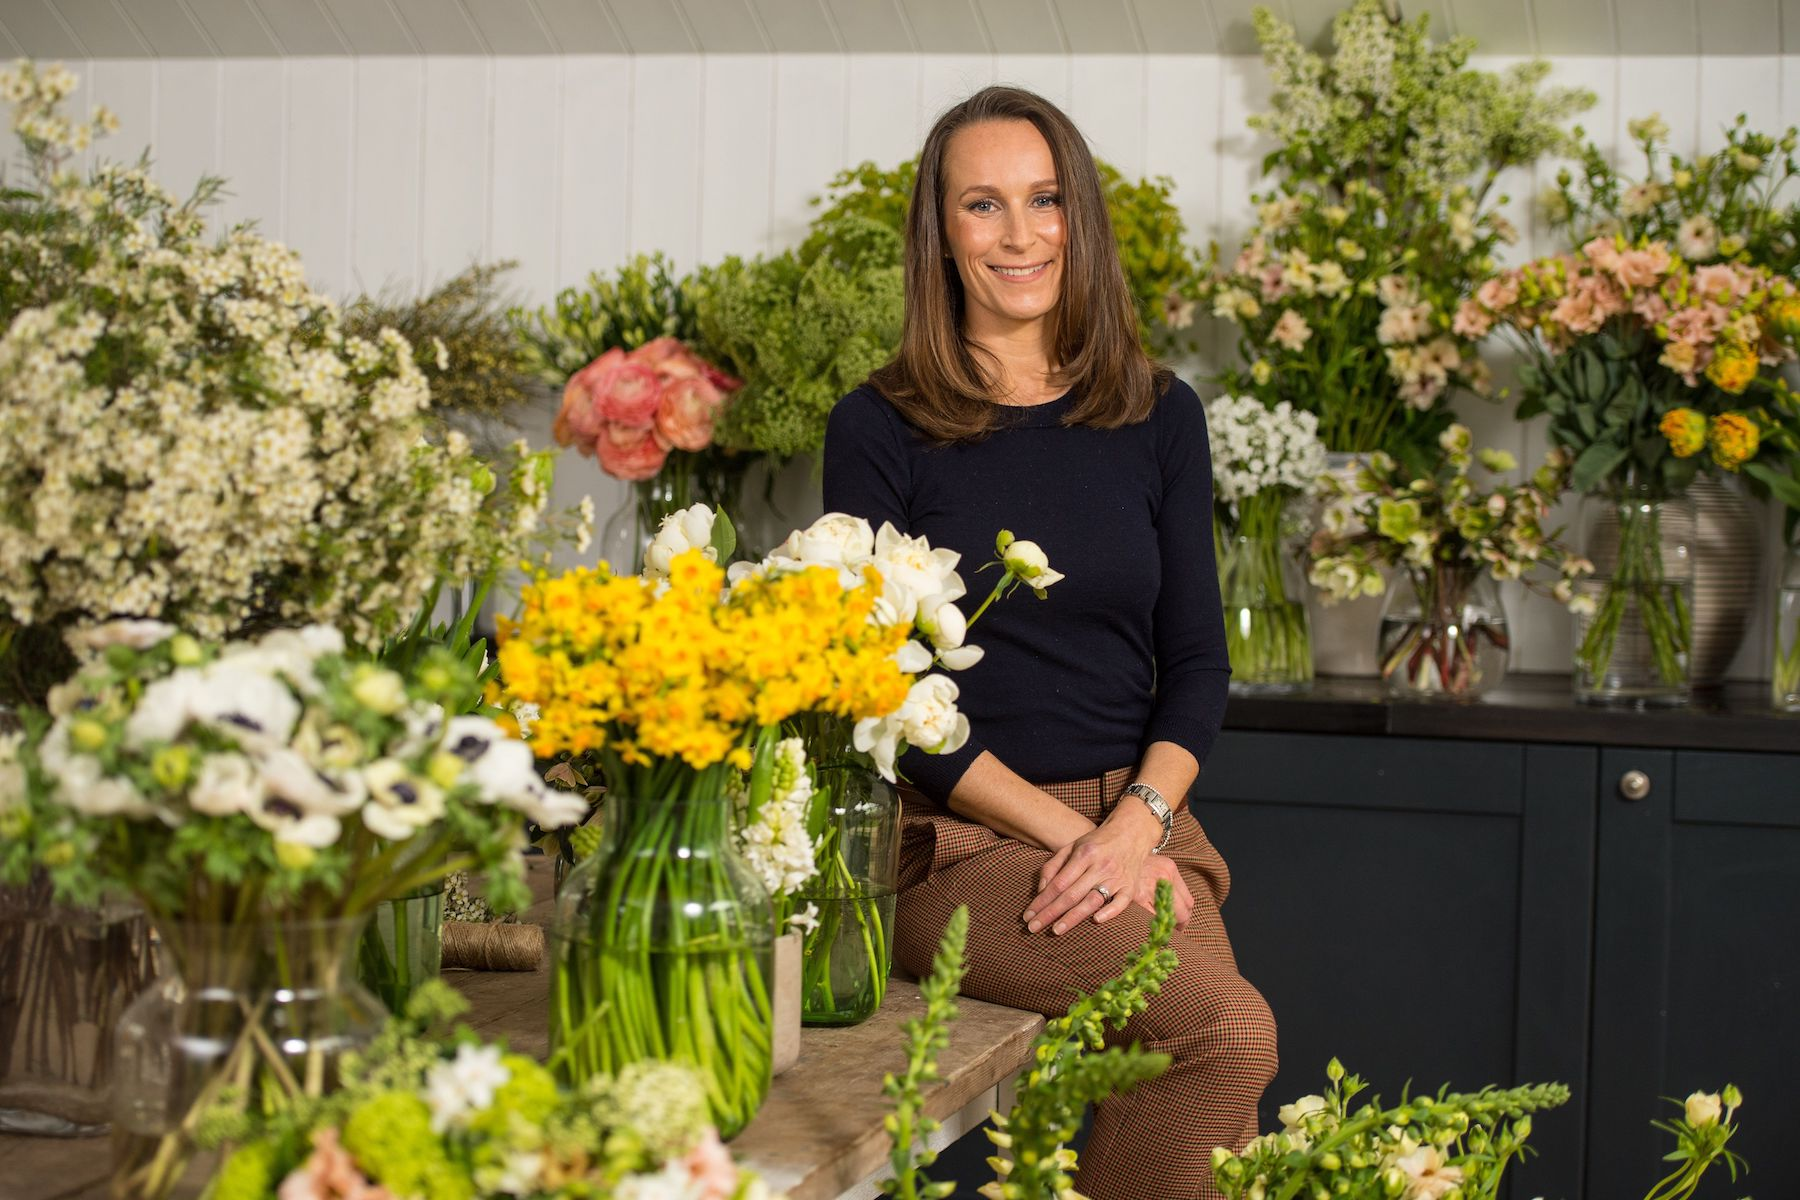 Philippa Craddock Royal Wedding Florist surrounded by flowers